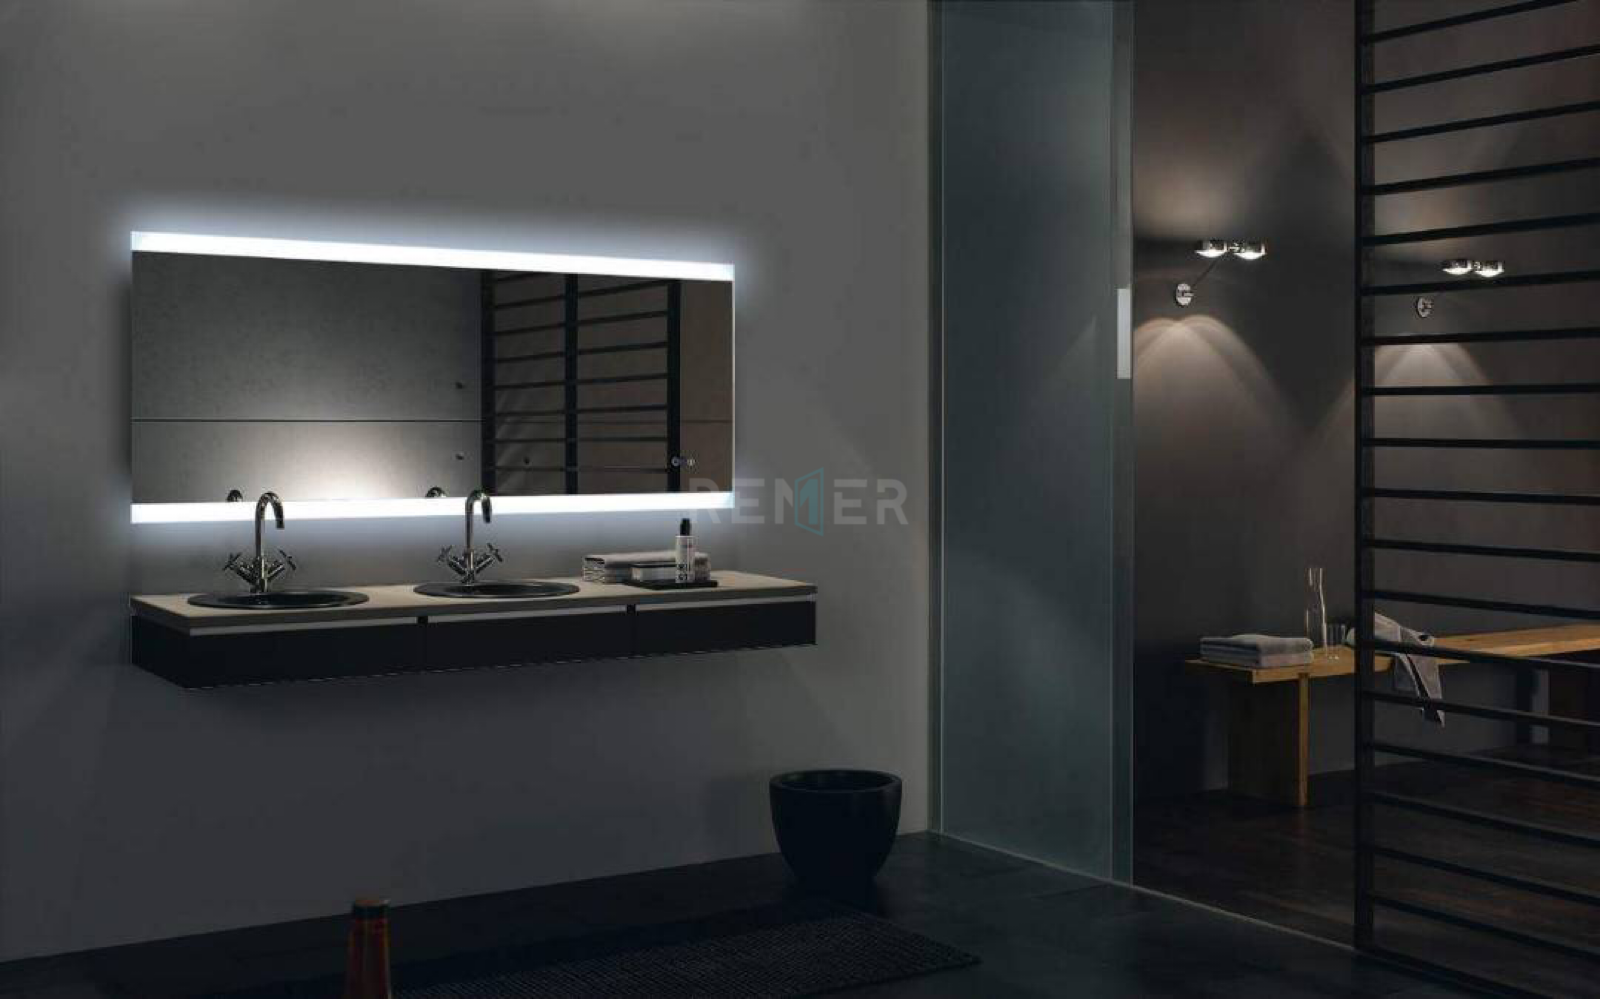 Superieur Backlit Mirror, Remer, 1700mm, LED Mirror, Demister Pad, Demister Mirror,  Smart Mirror, Light Up A Mirror, LED, Vanity, Bedroom, Bathroom, Makeup  Mirror, ...